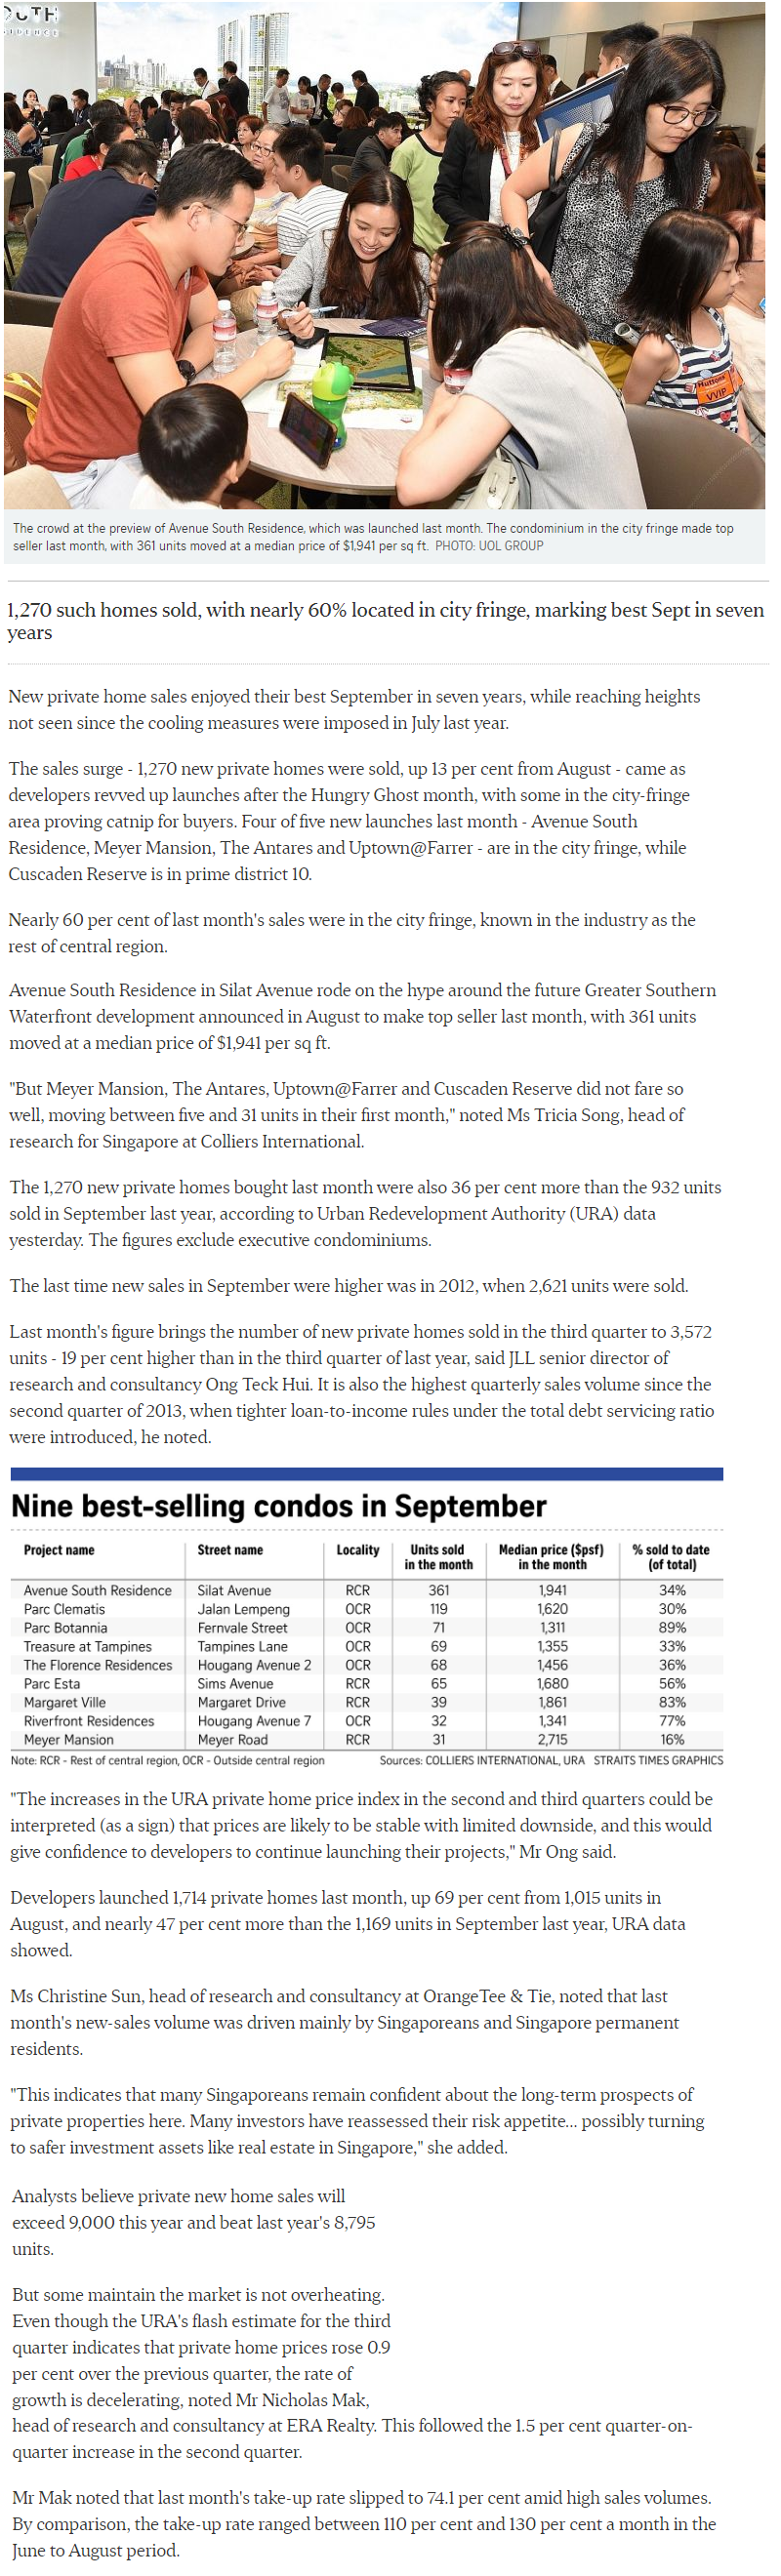 The Gazania - New private Home Sales Hit A Hight In September